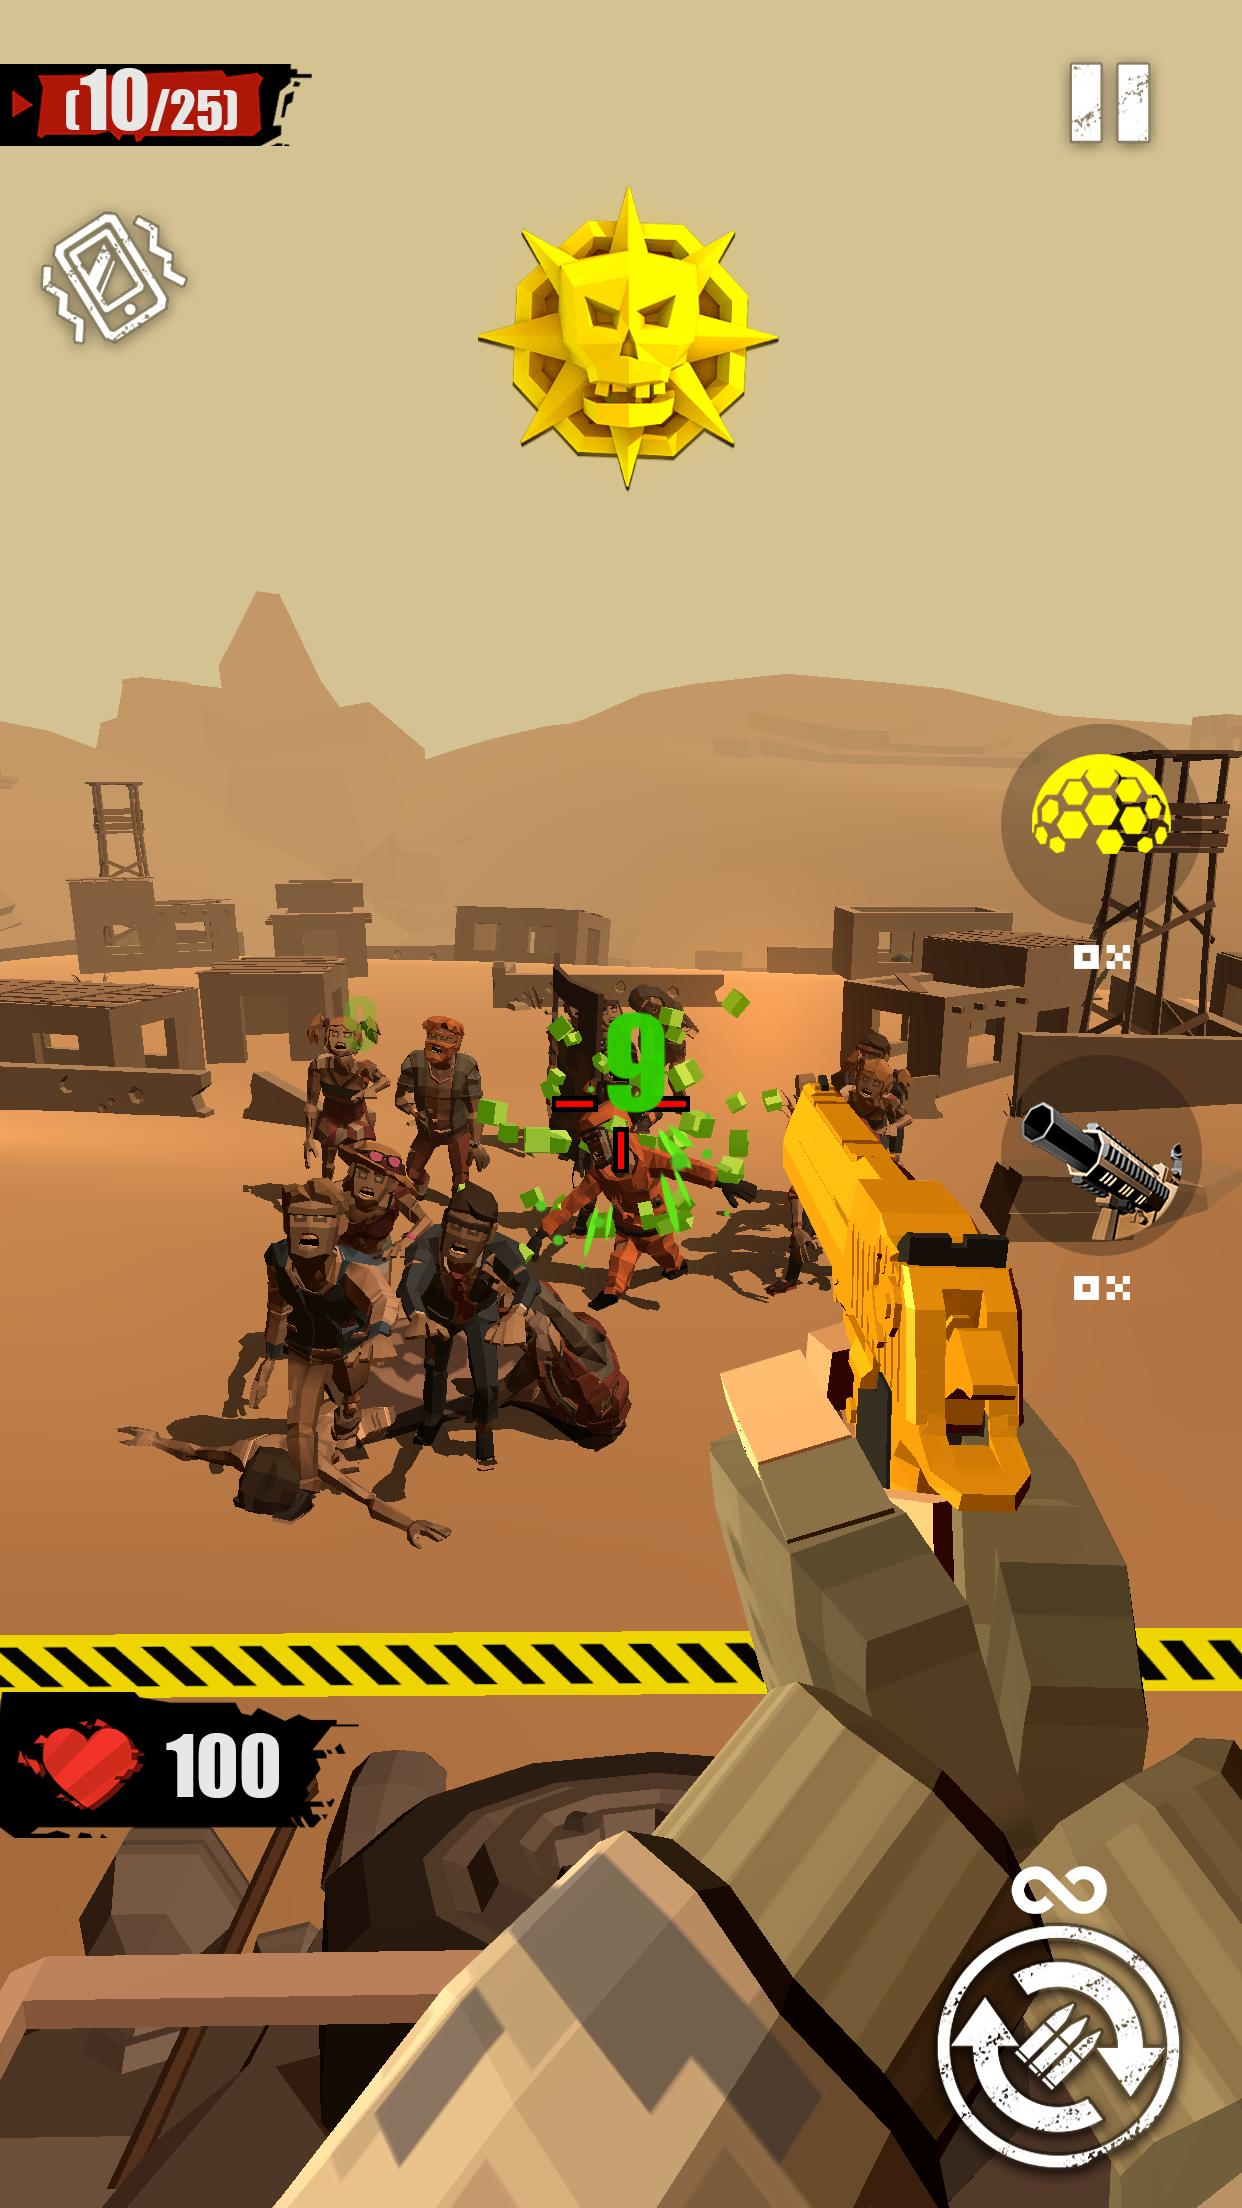 Merge Gun: Shoot Zombie 2.7.4 Screenshot 2